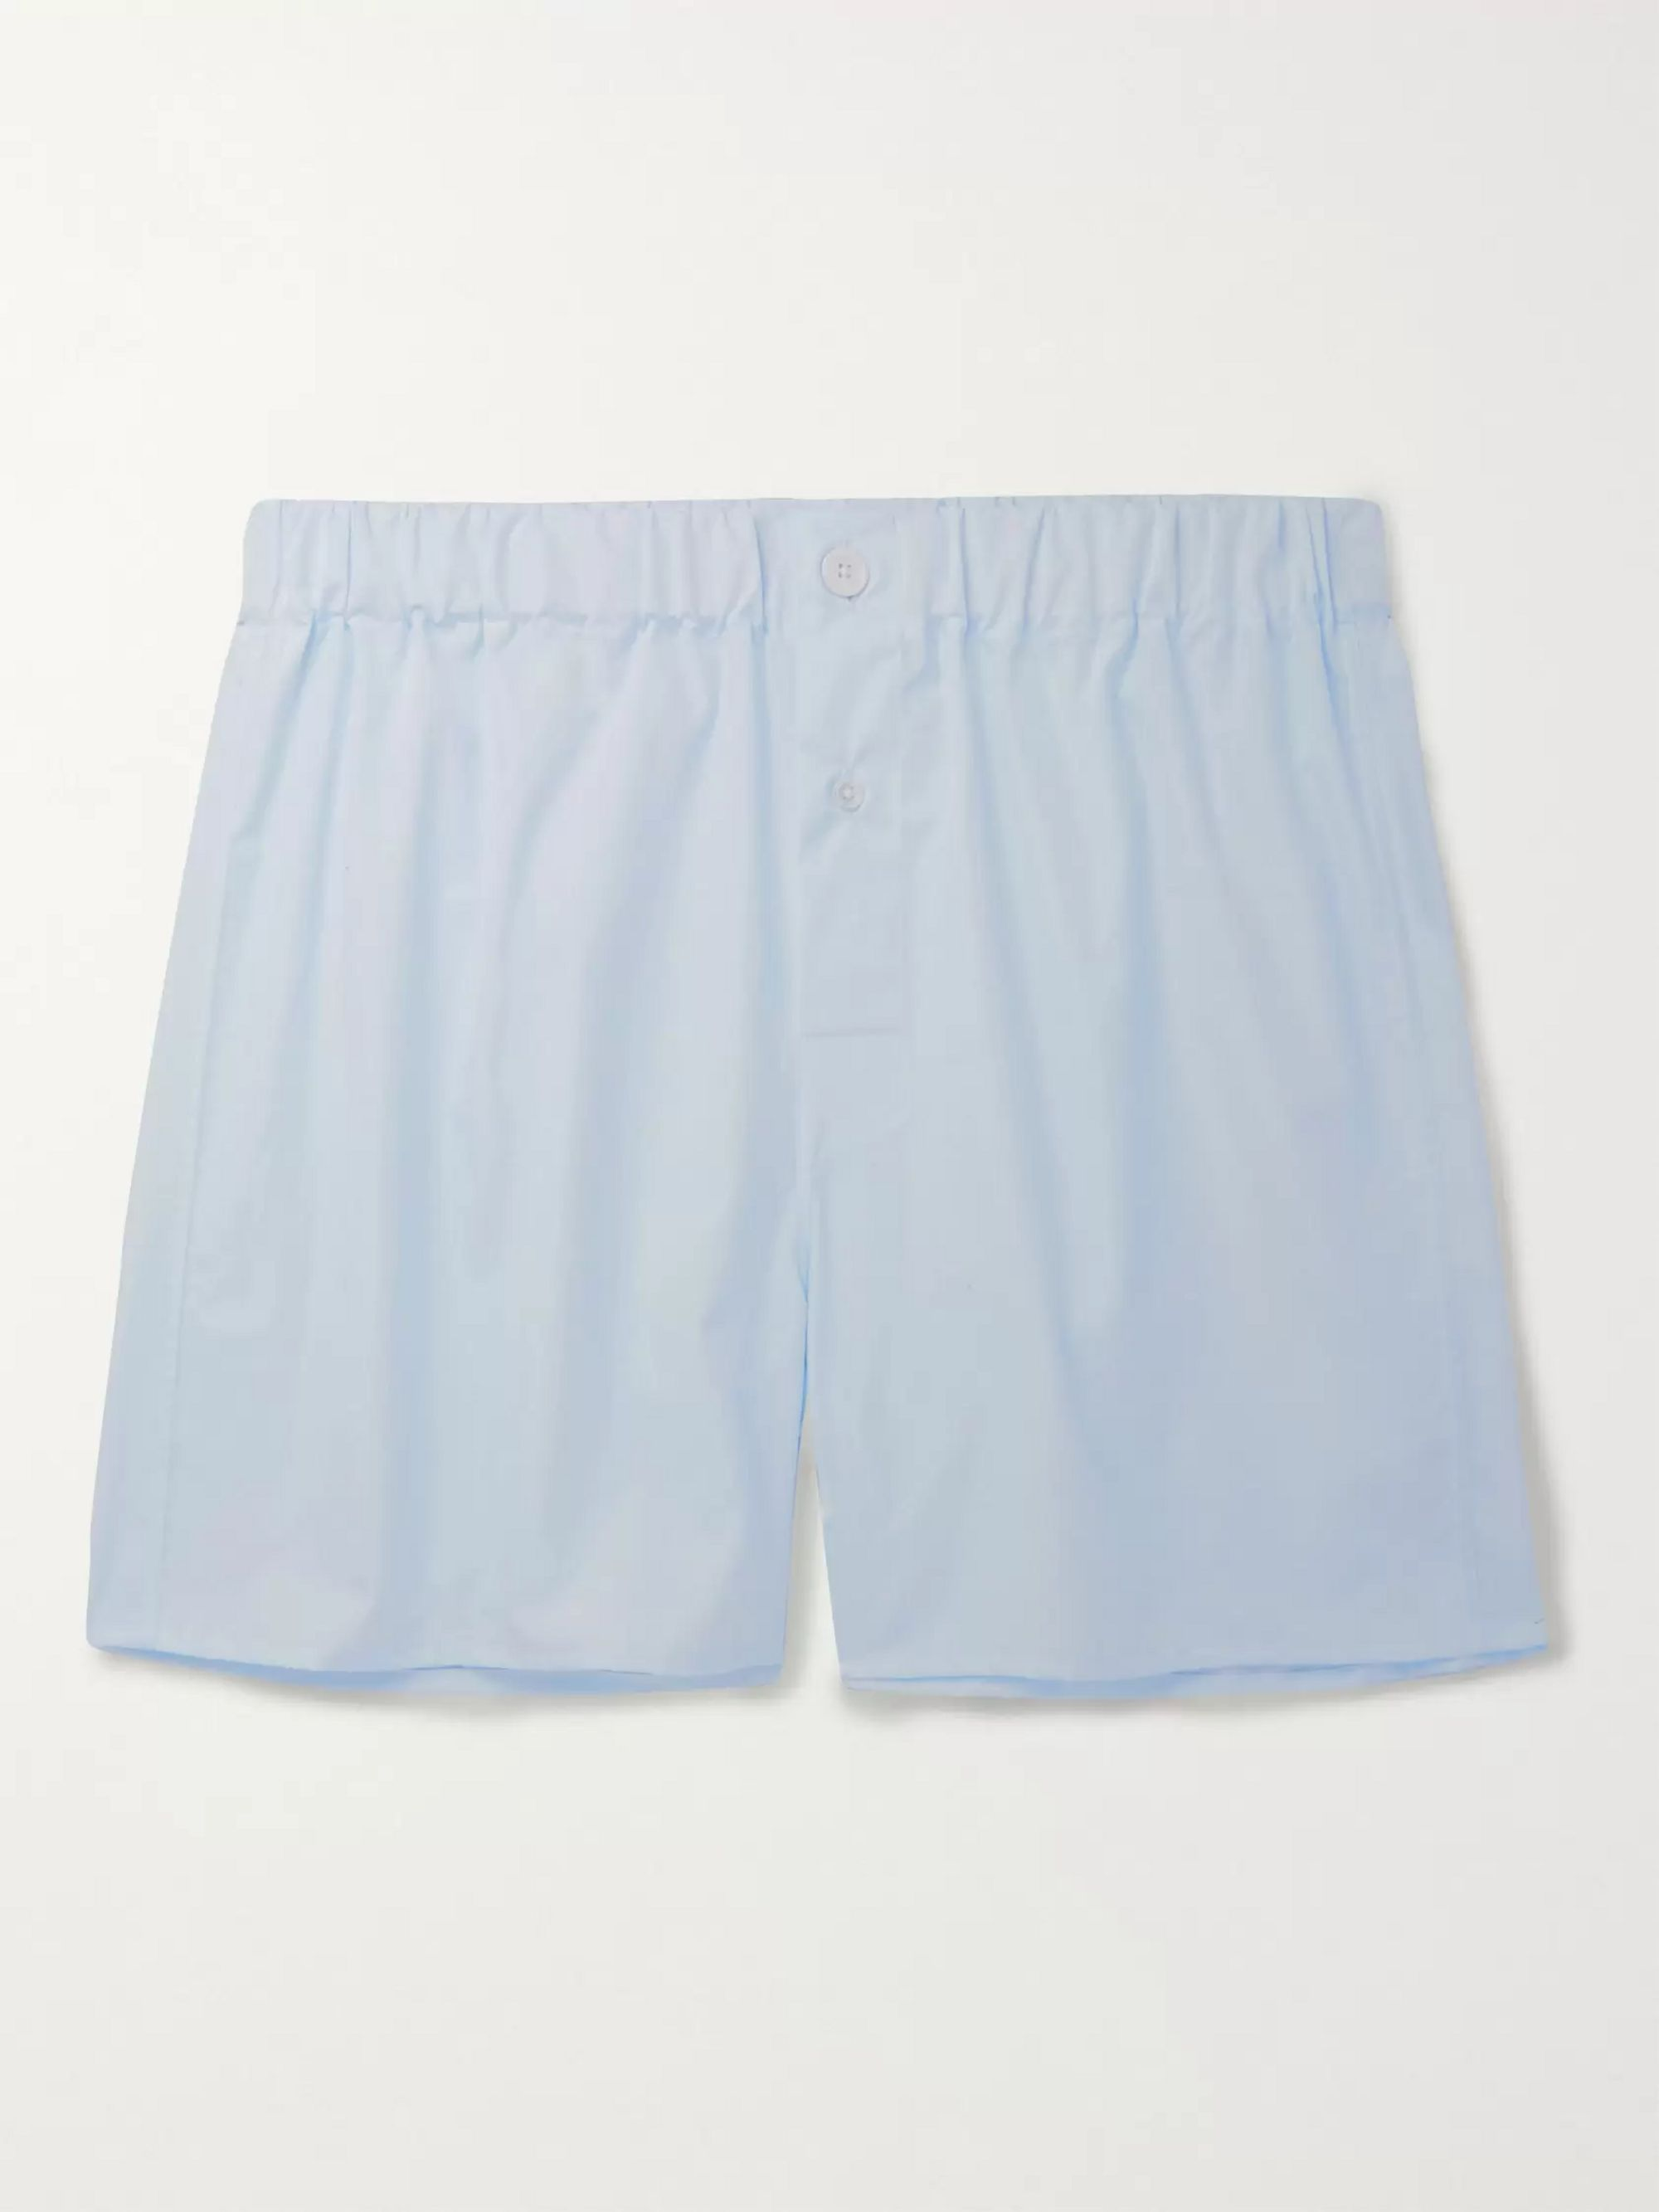 EMMA WILLIS Cotton-Poplin Boxer Shorts